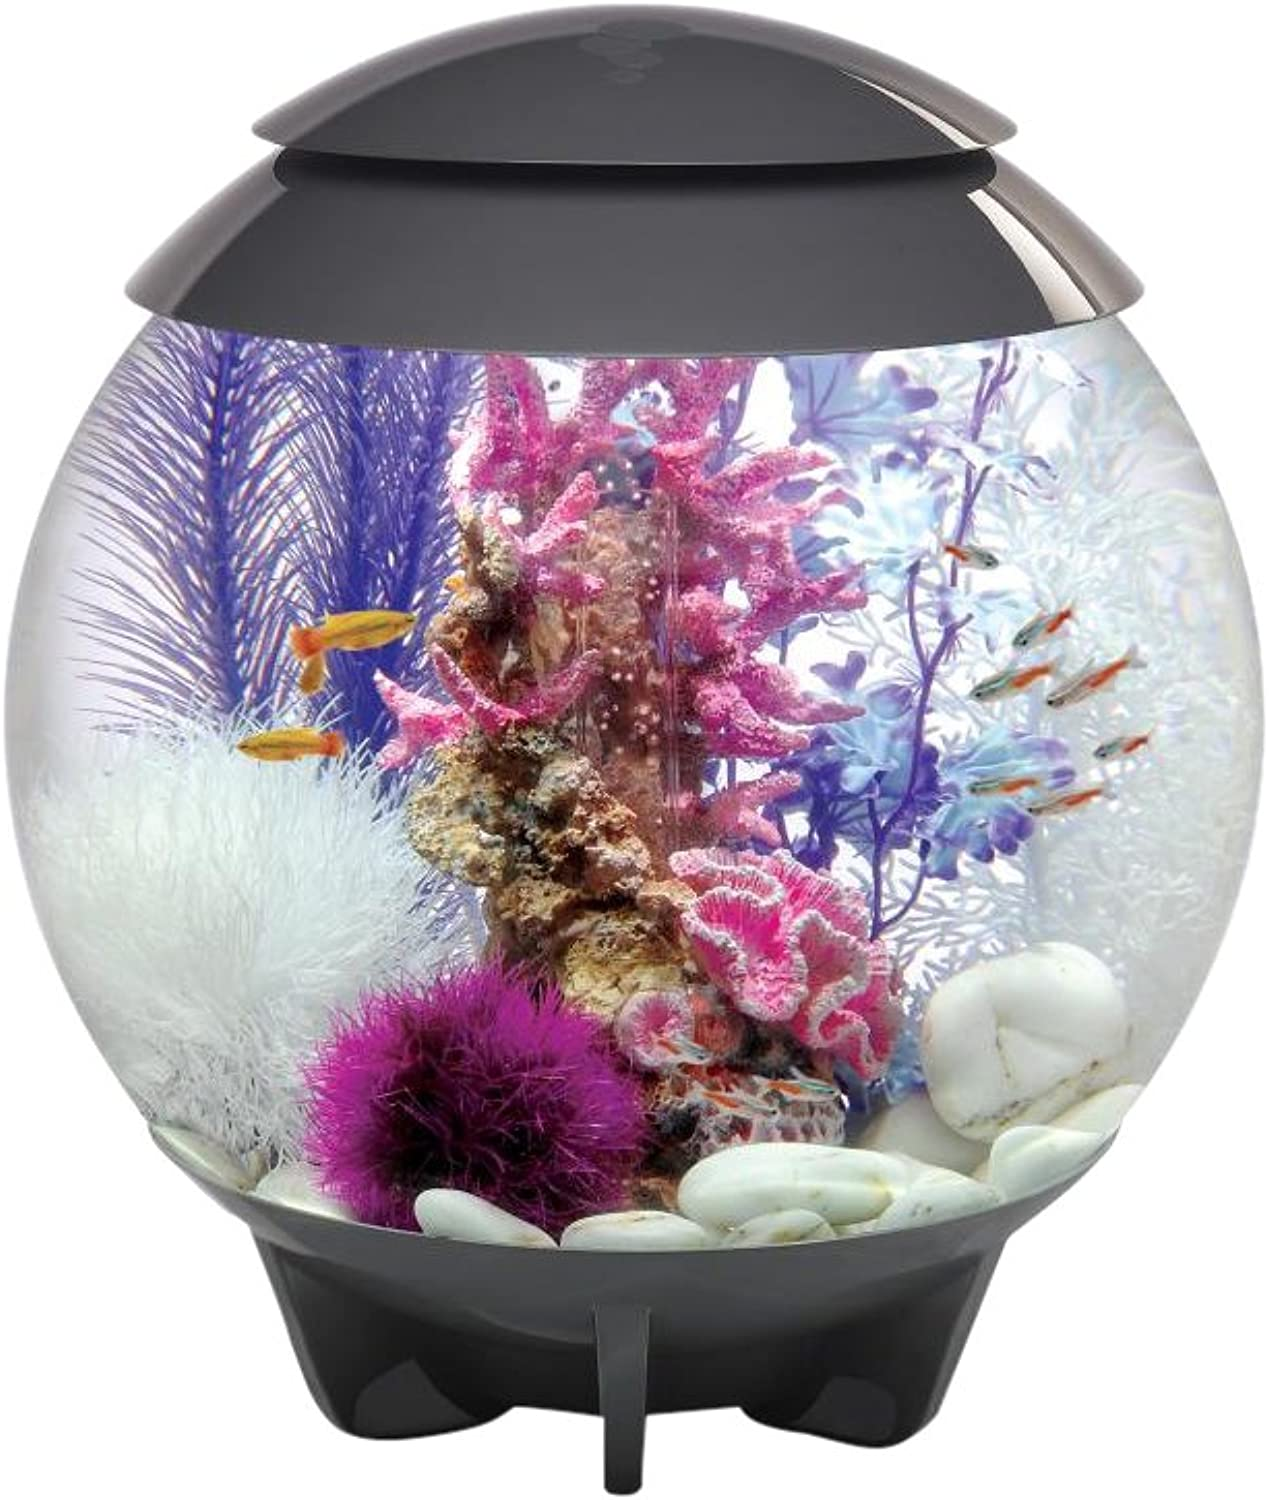 BiOrb Halo 30L Aquarium in Grey with Moonlight LED Lighting